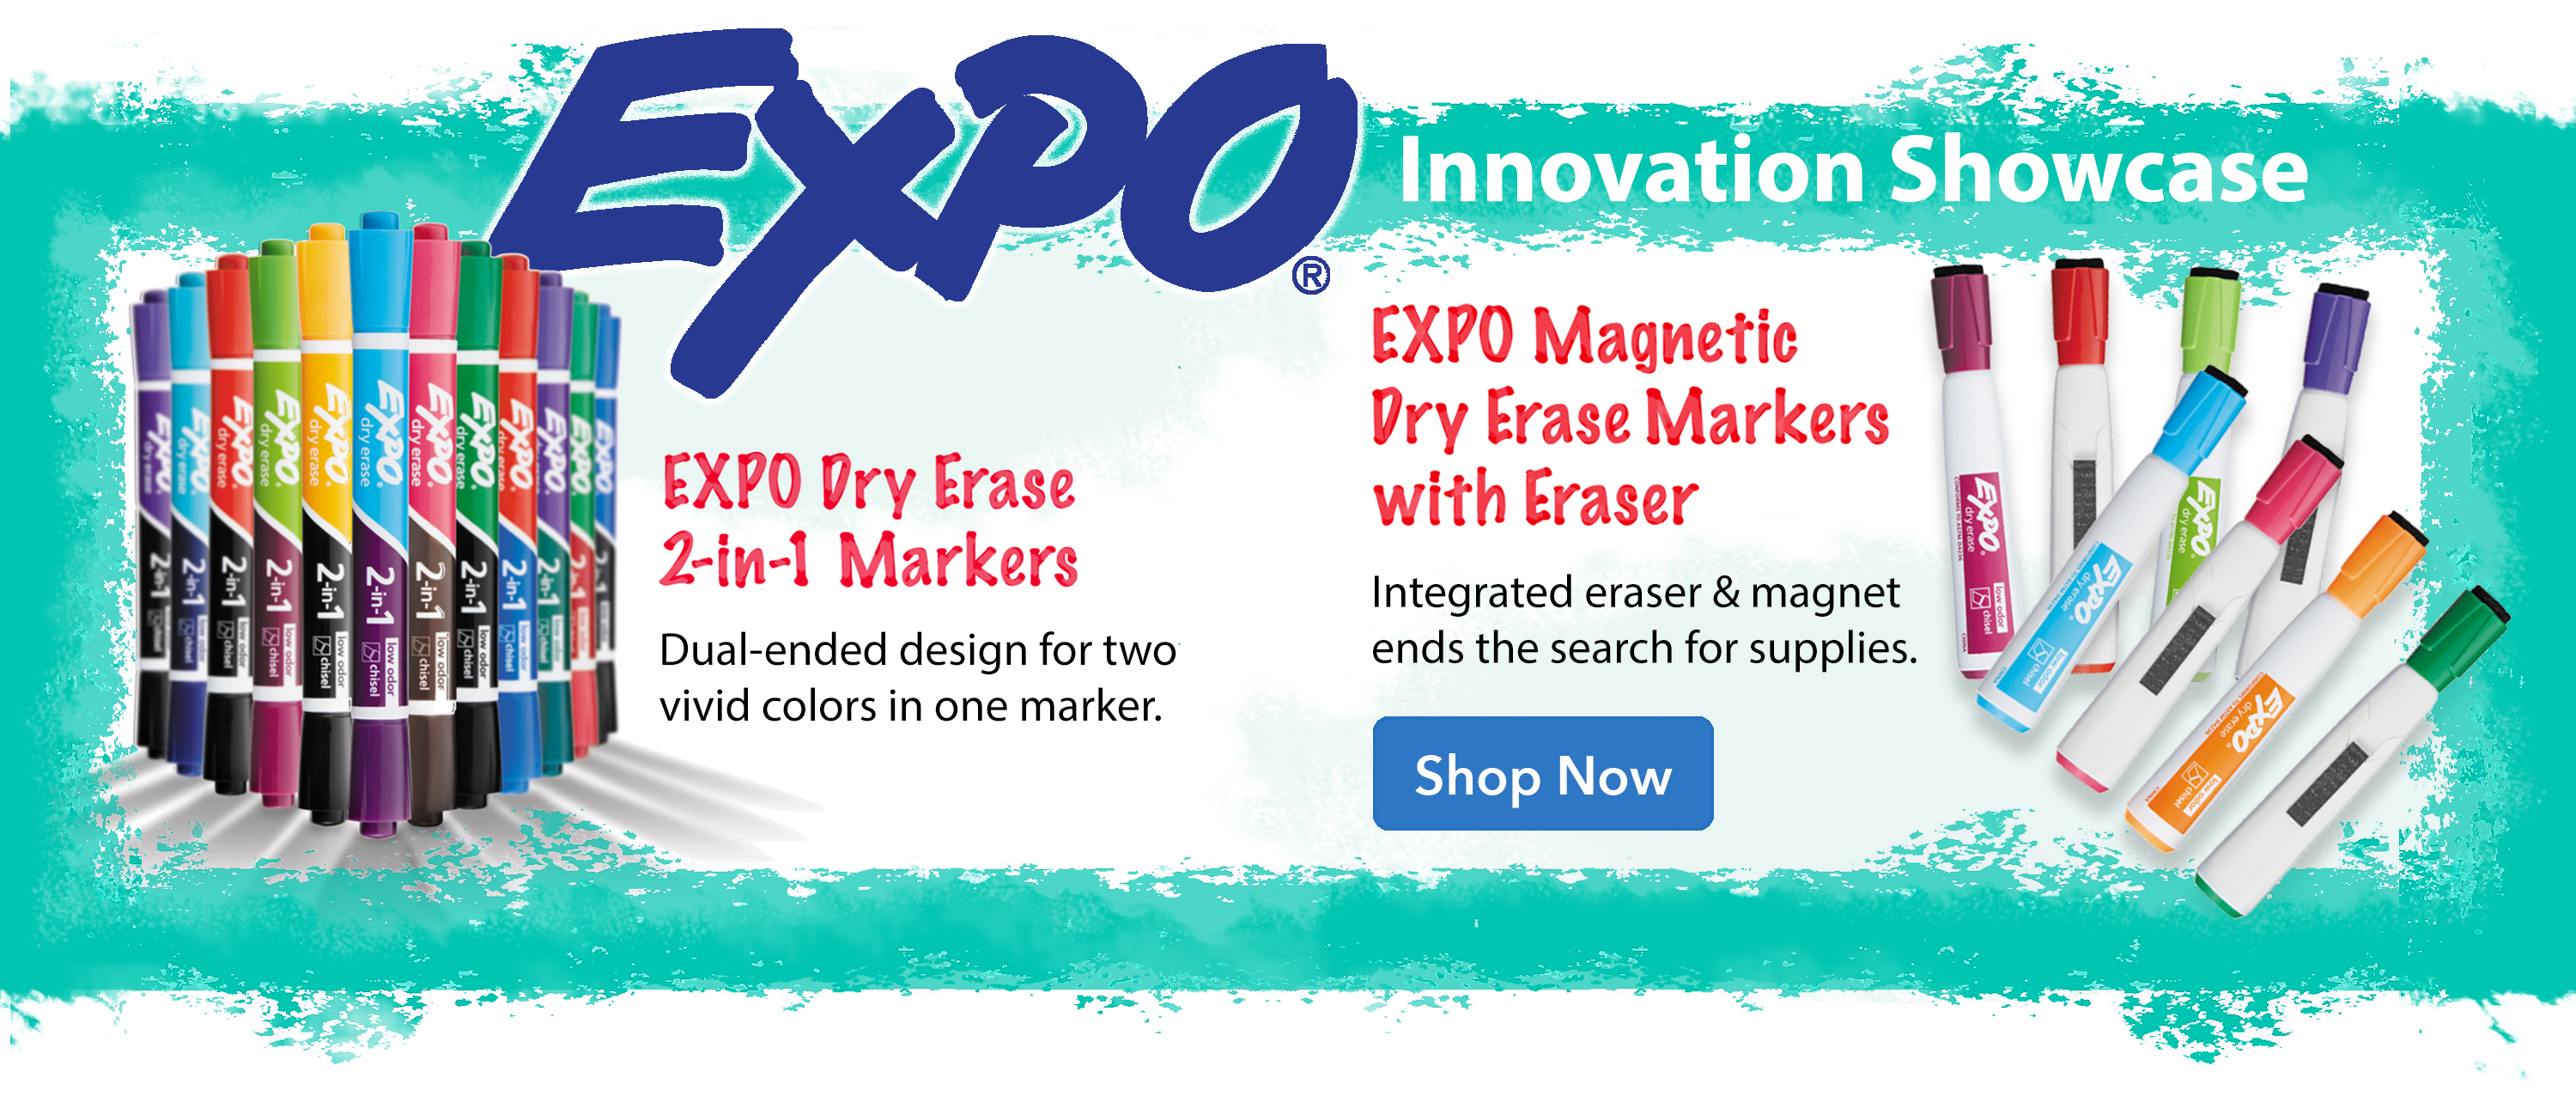 Expo Markers Dry & Wet Erase fice Depot ficeMax